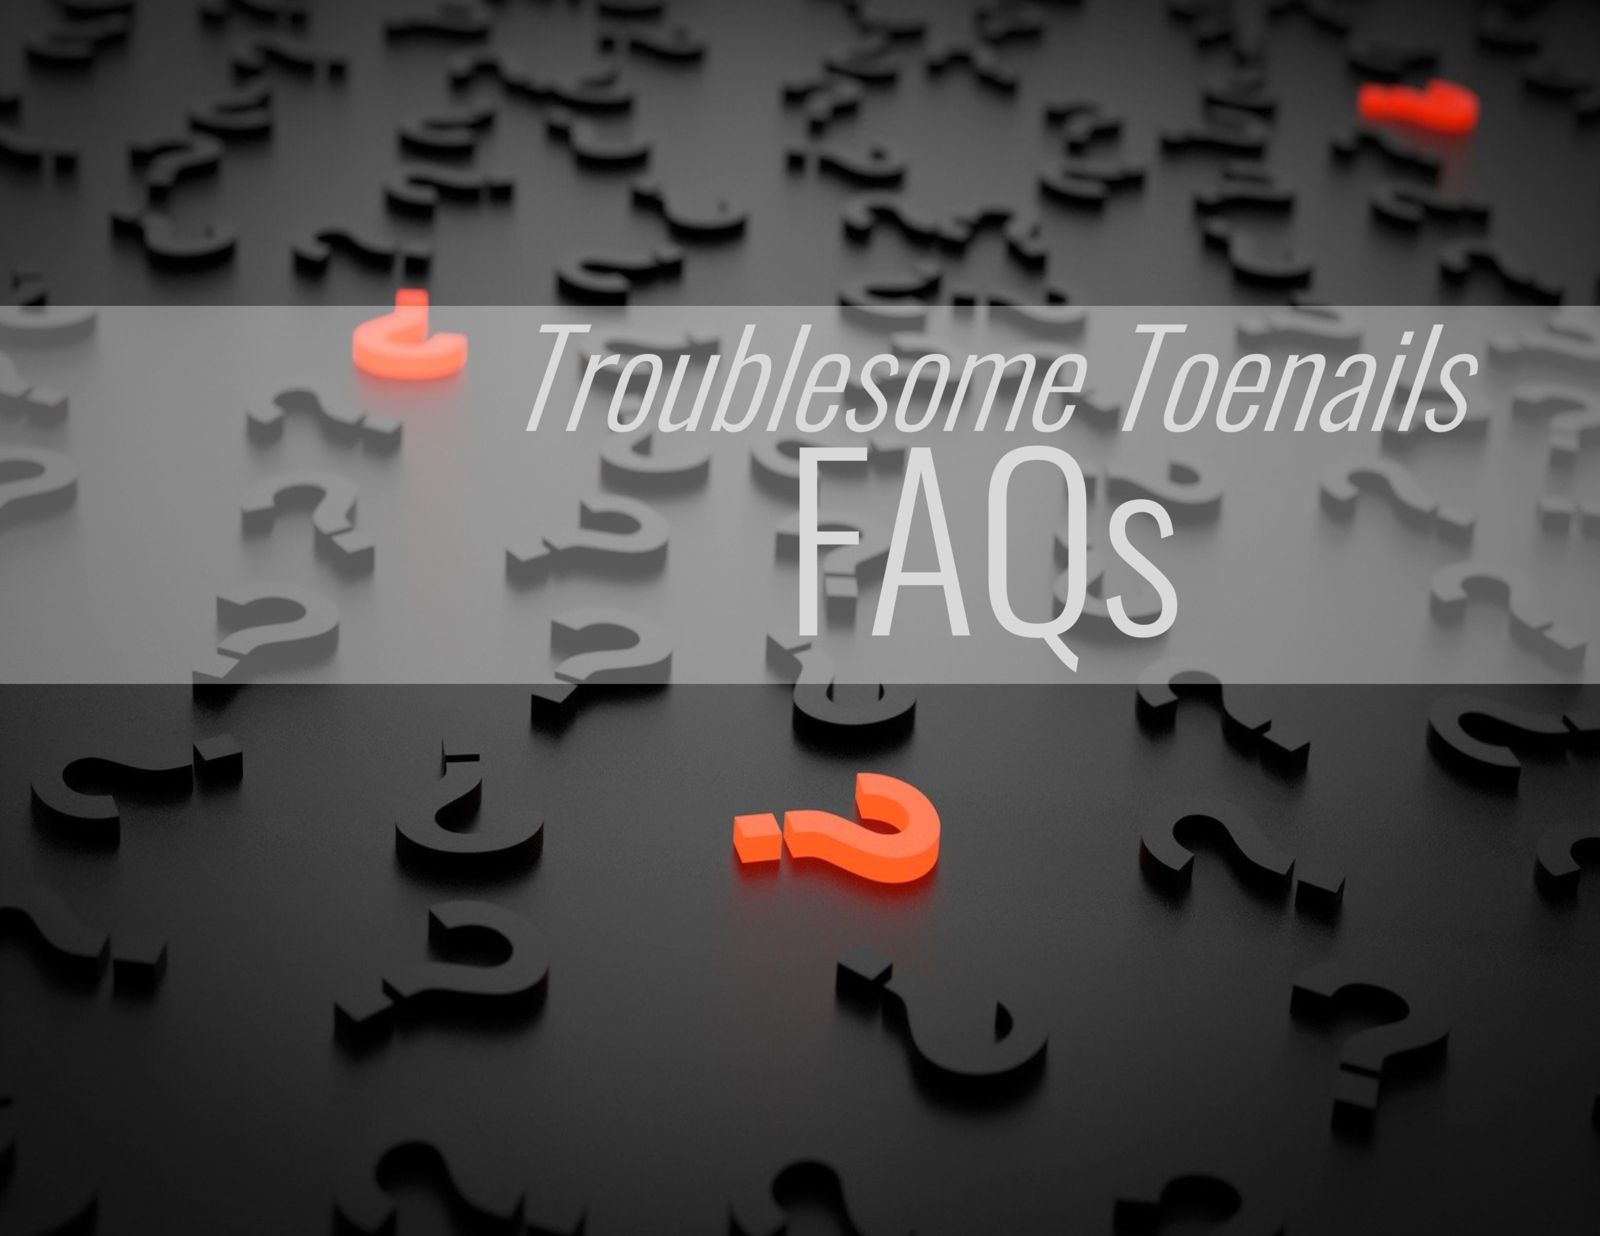 question marks and the words: Troublesome Toenails FAQs